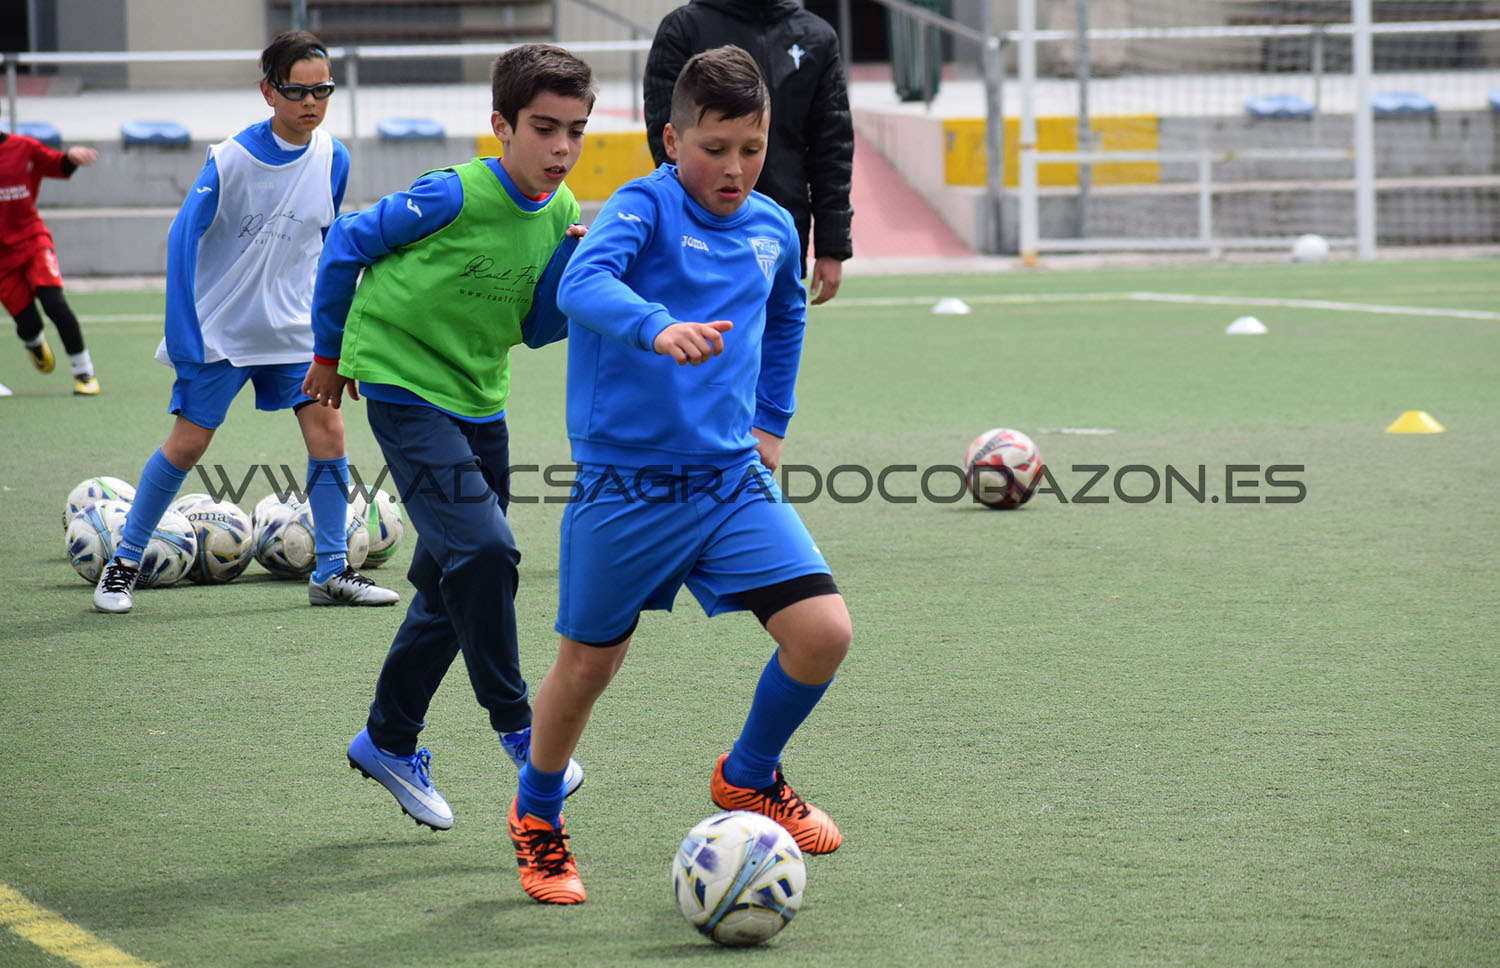 clinic-celta-sagrado (43)